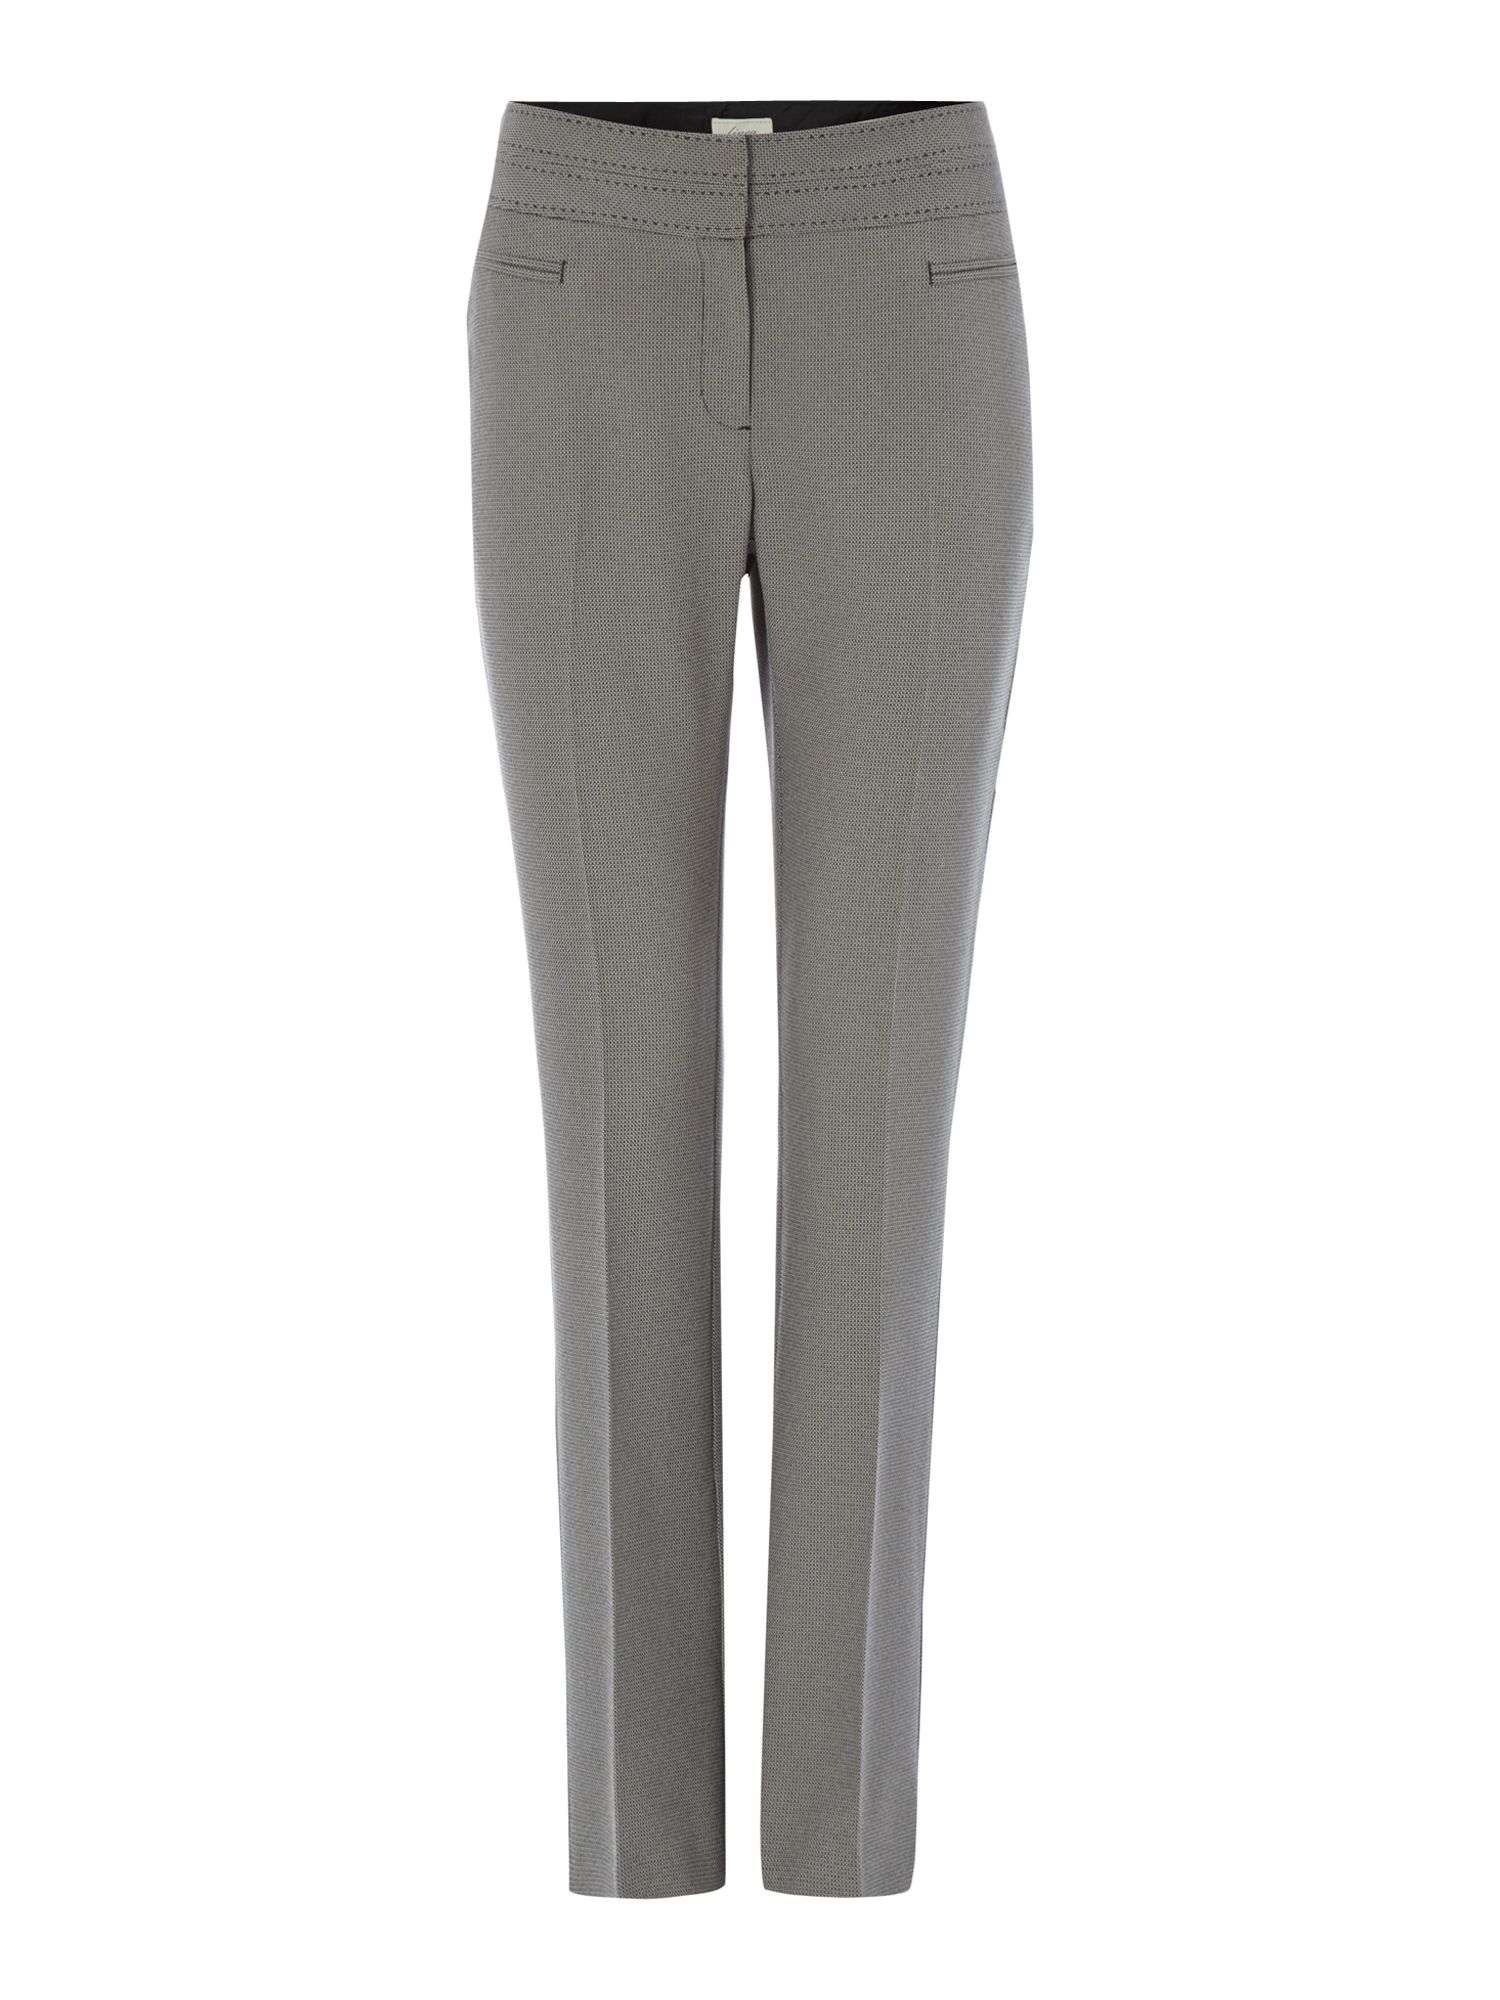 Lottie spot tailored trouser- 30